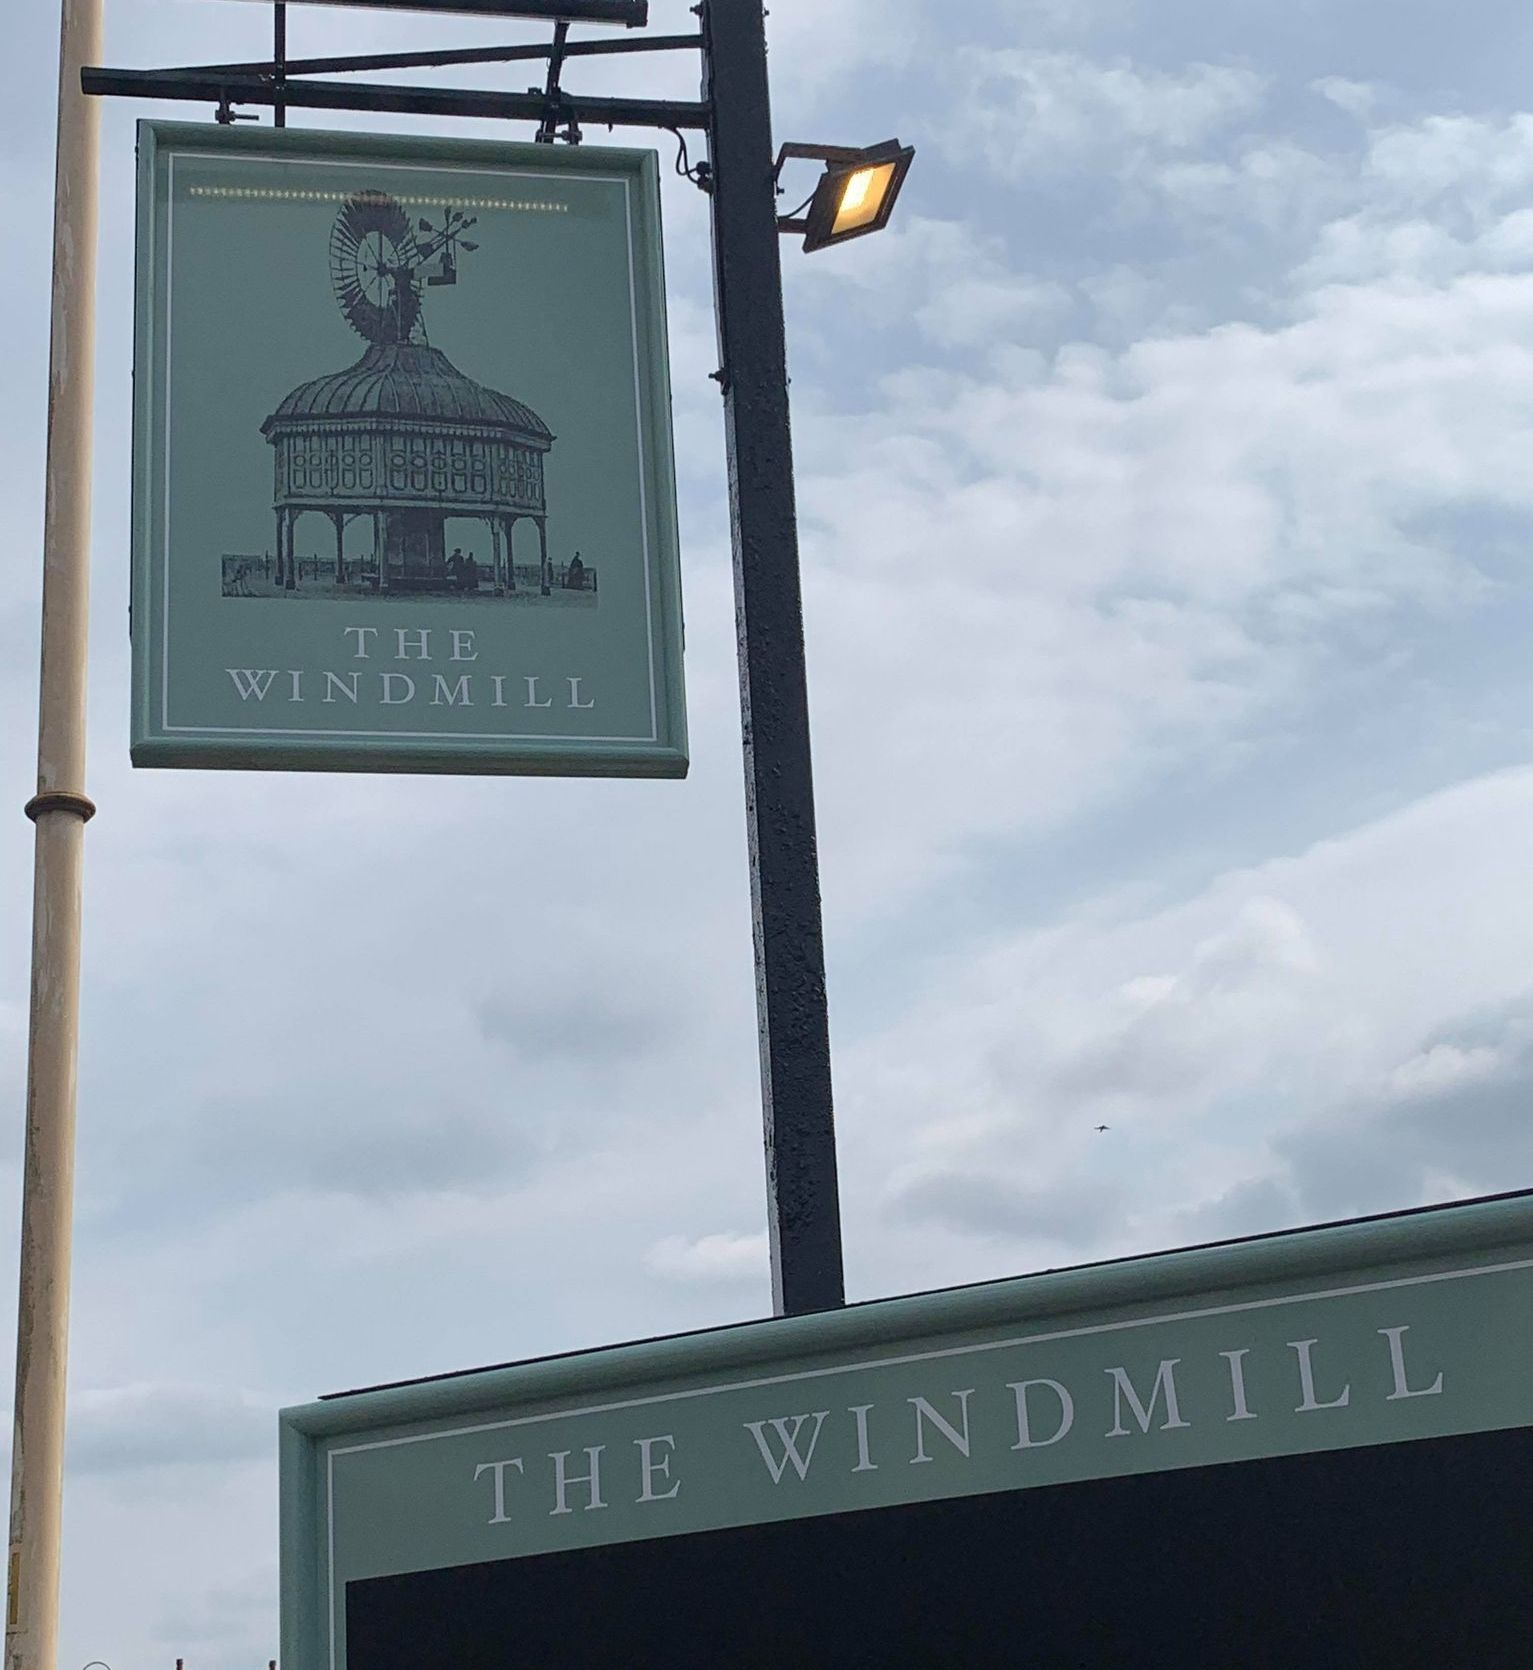 The new sign at The Windmill pub in Southport